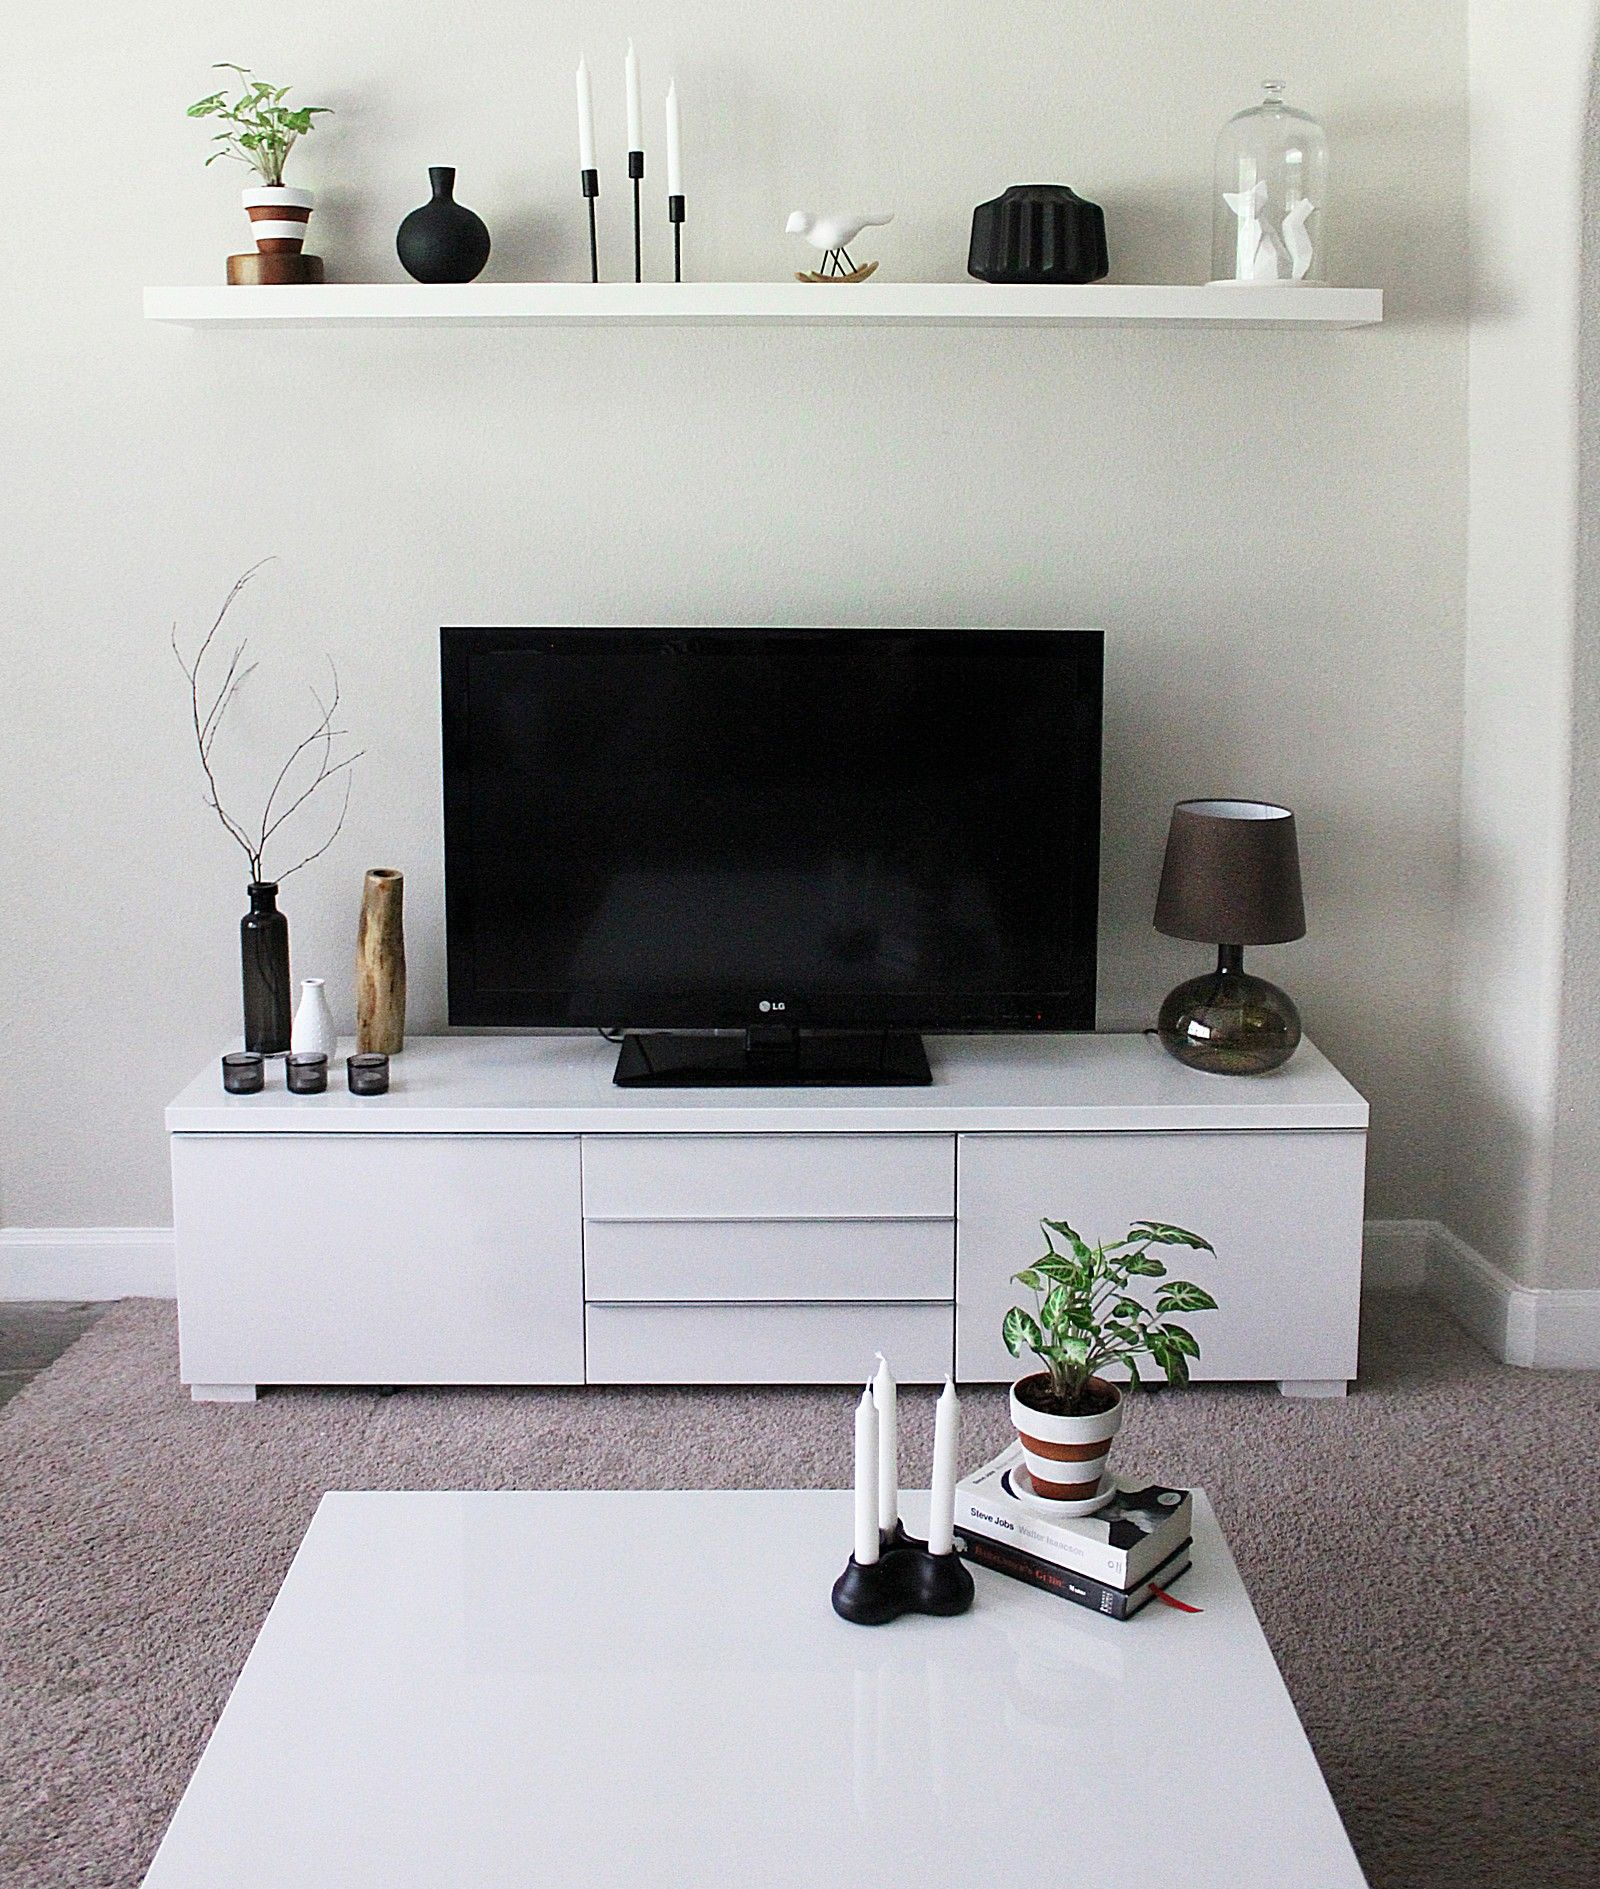 minimalist tv stand and cabinet ikea besta interiors design minimalist tv stand and cabinet ikea besta since i think we ll never get the tv out of the living room might as well have a pretty stand to go with it